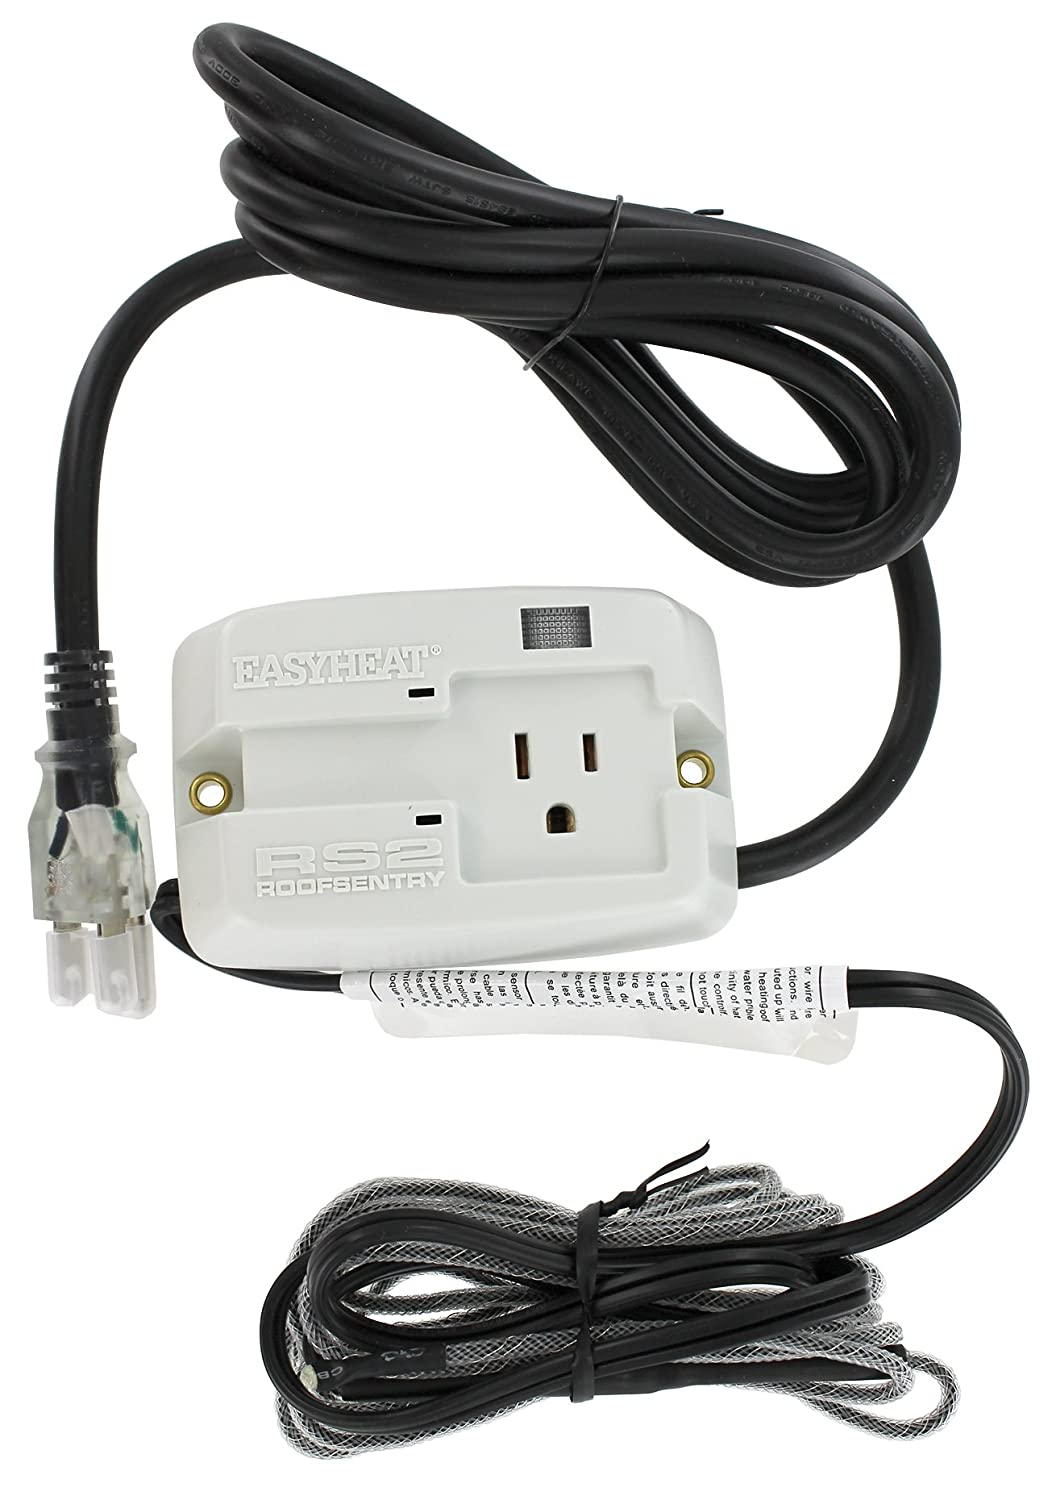 Amazon.com : Easy Heat RS-2 Automatic Roof De-Icing Cable Control ...